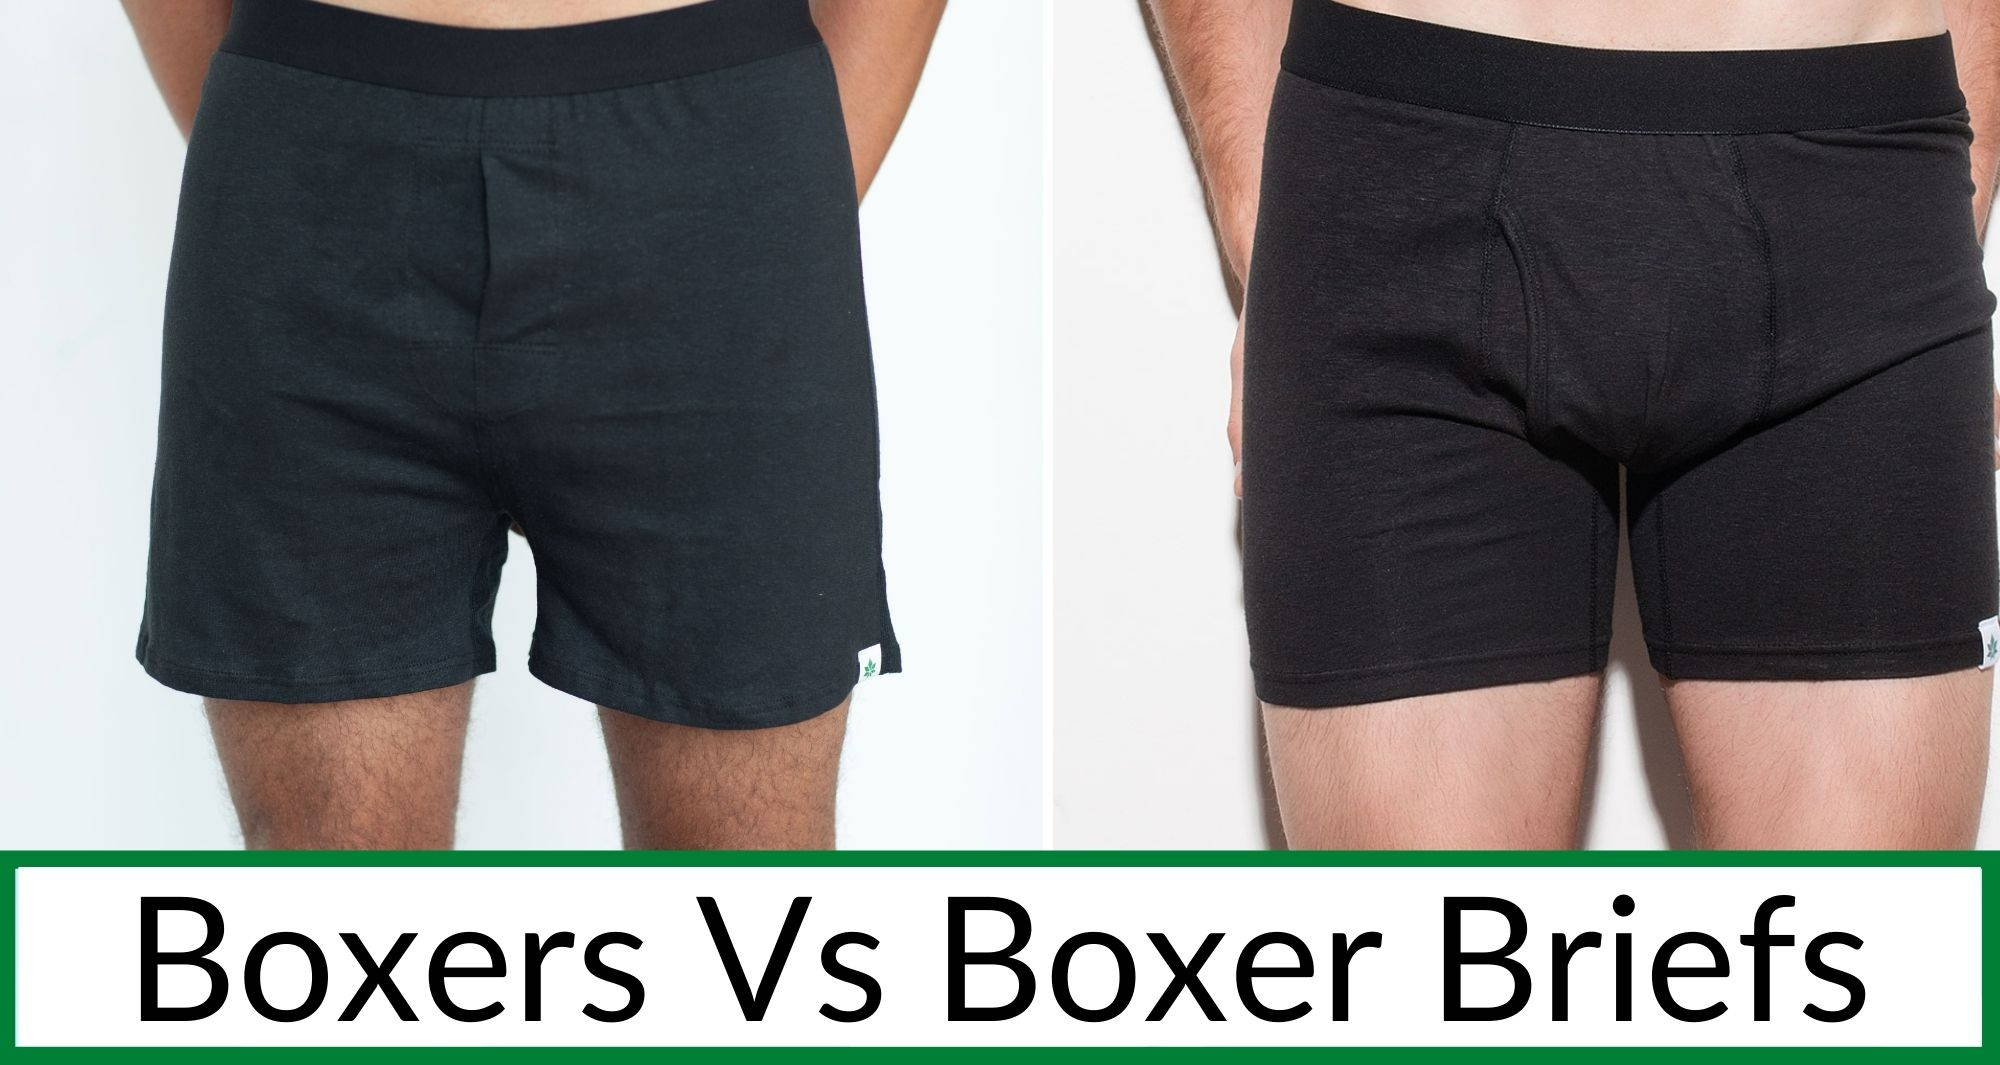 Two men stand wearing boxers vs boxer briefs in black hemp material